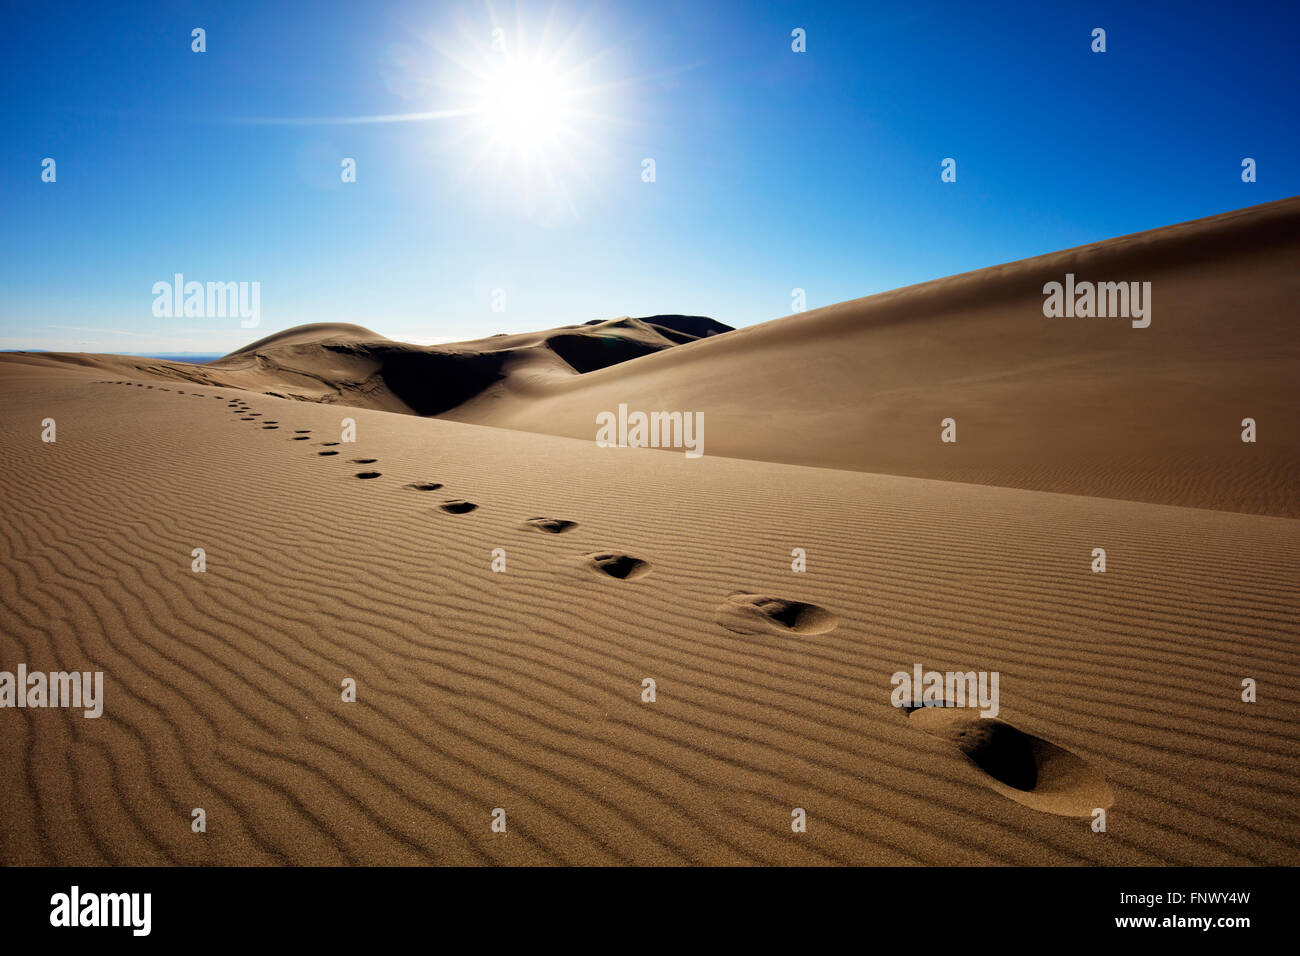 Bright sun over footsteps in remote desert sand dunes, Great Sand Dunes National Park, Colorado, USA. Stock Photo